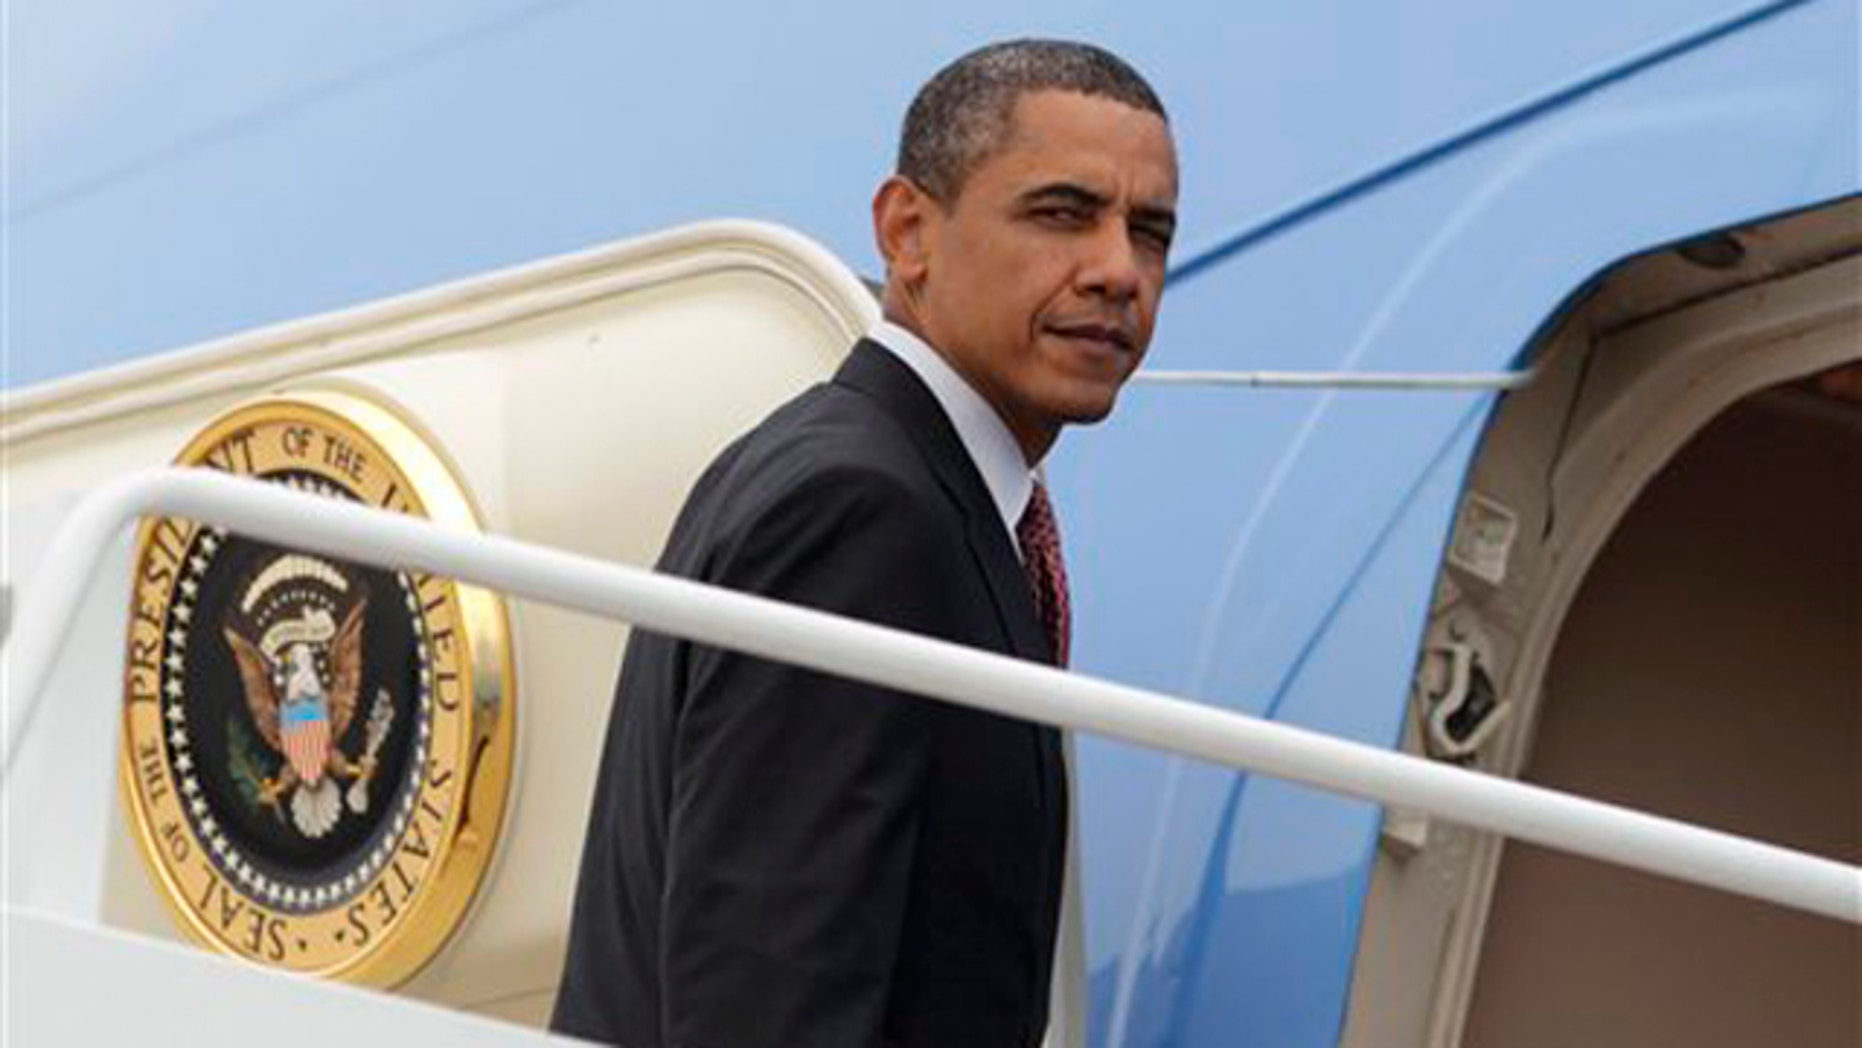 President Obama boards Air Force One at Andrews Air Force Base, Md., June 23 en route to New York.